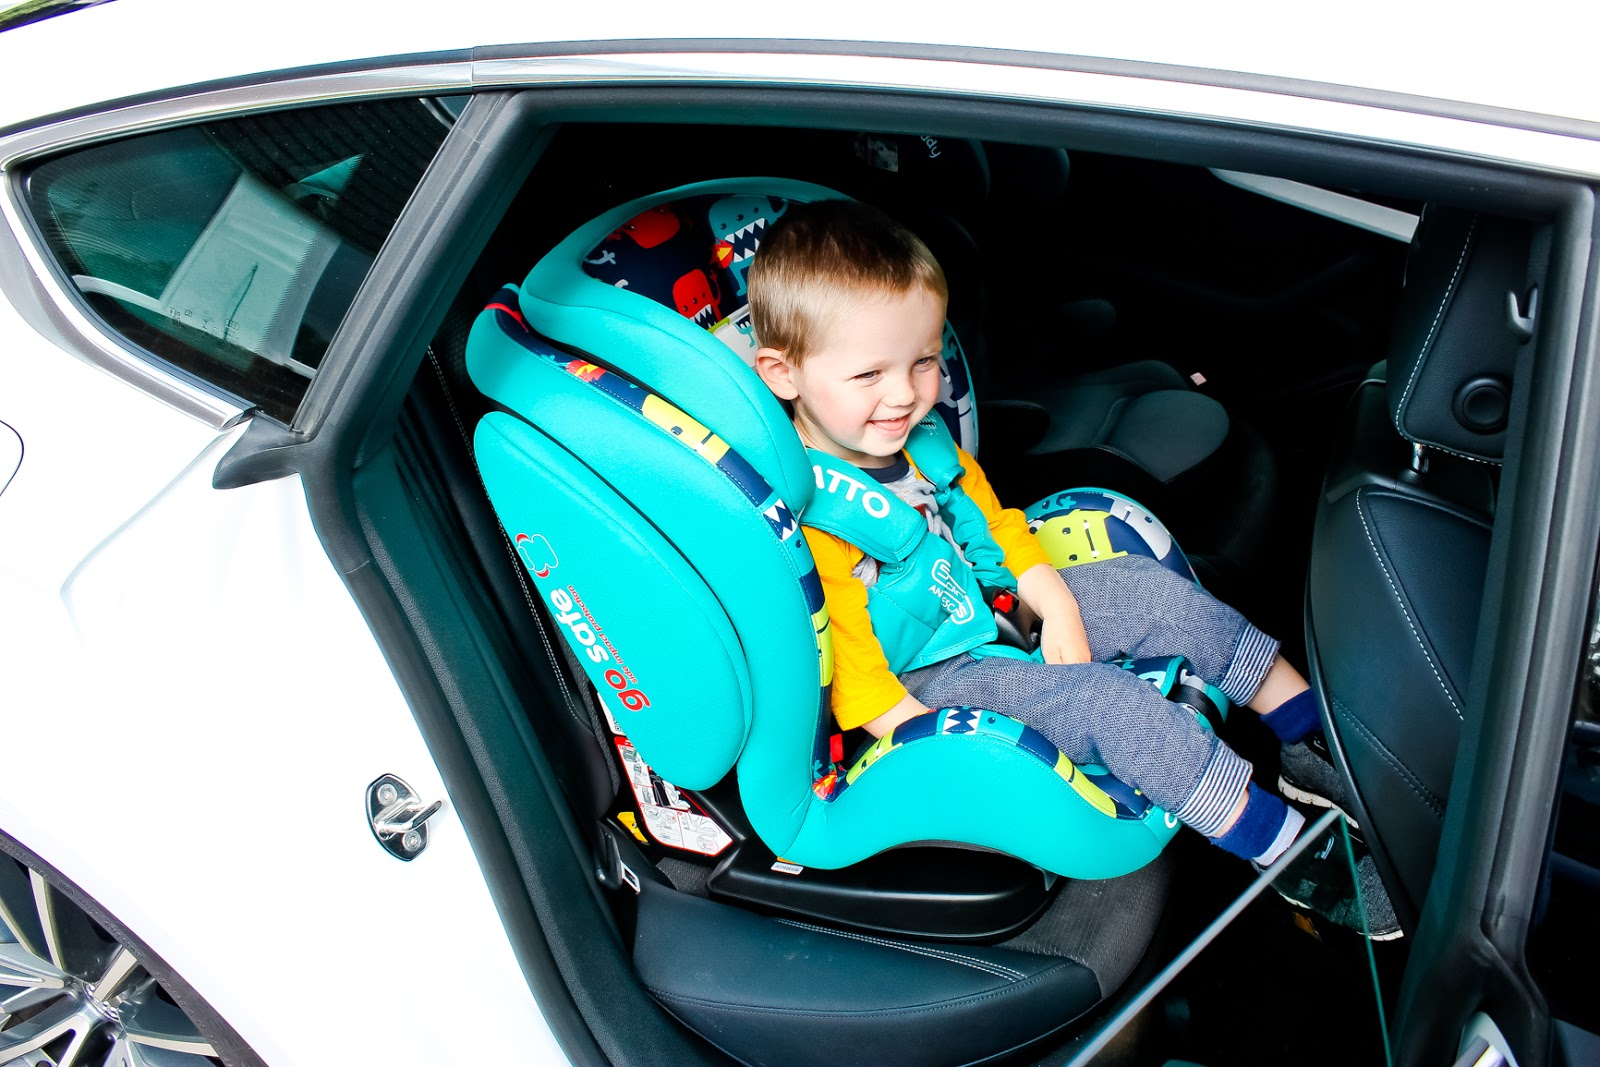 cosatto hug, cosatto hug review, cosatto hug isofix, isofix car seat,